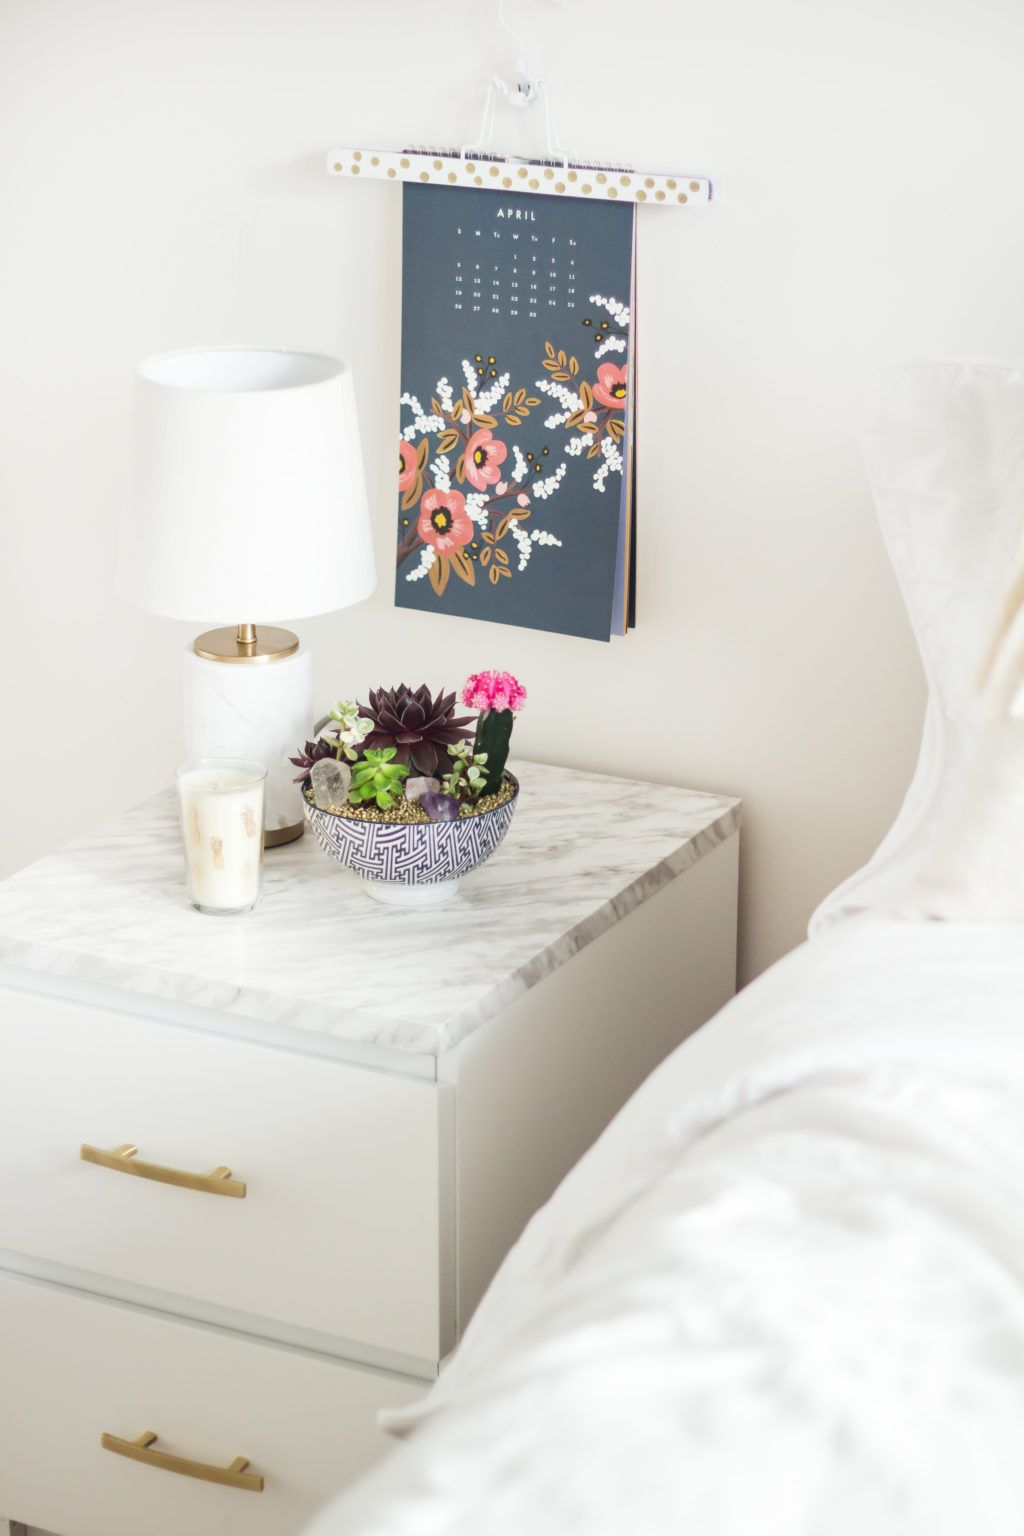 Ikea Malm End Table Upgrade Marble Contact Paper And 2 Drawer Pulls